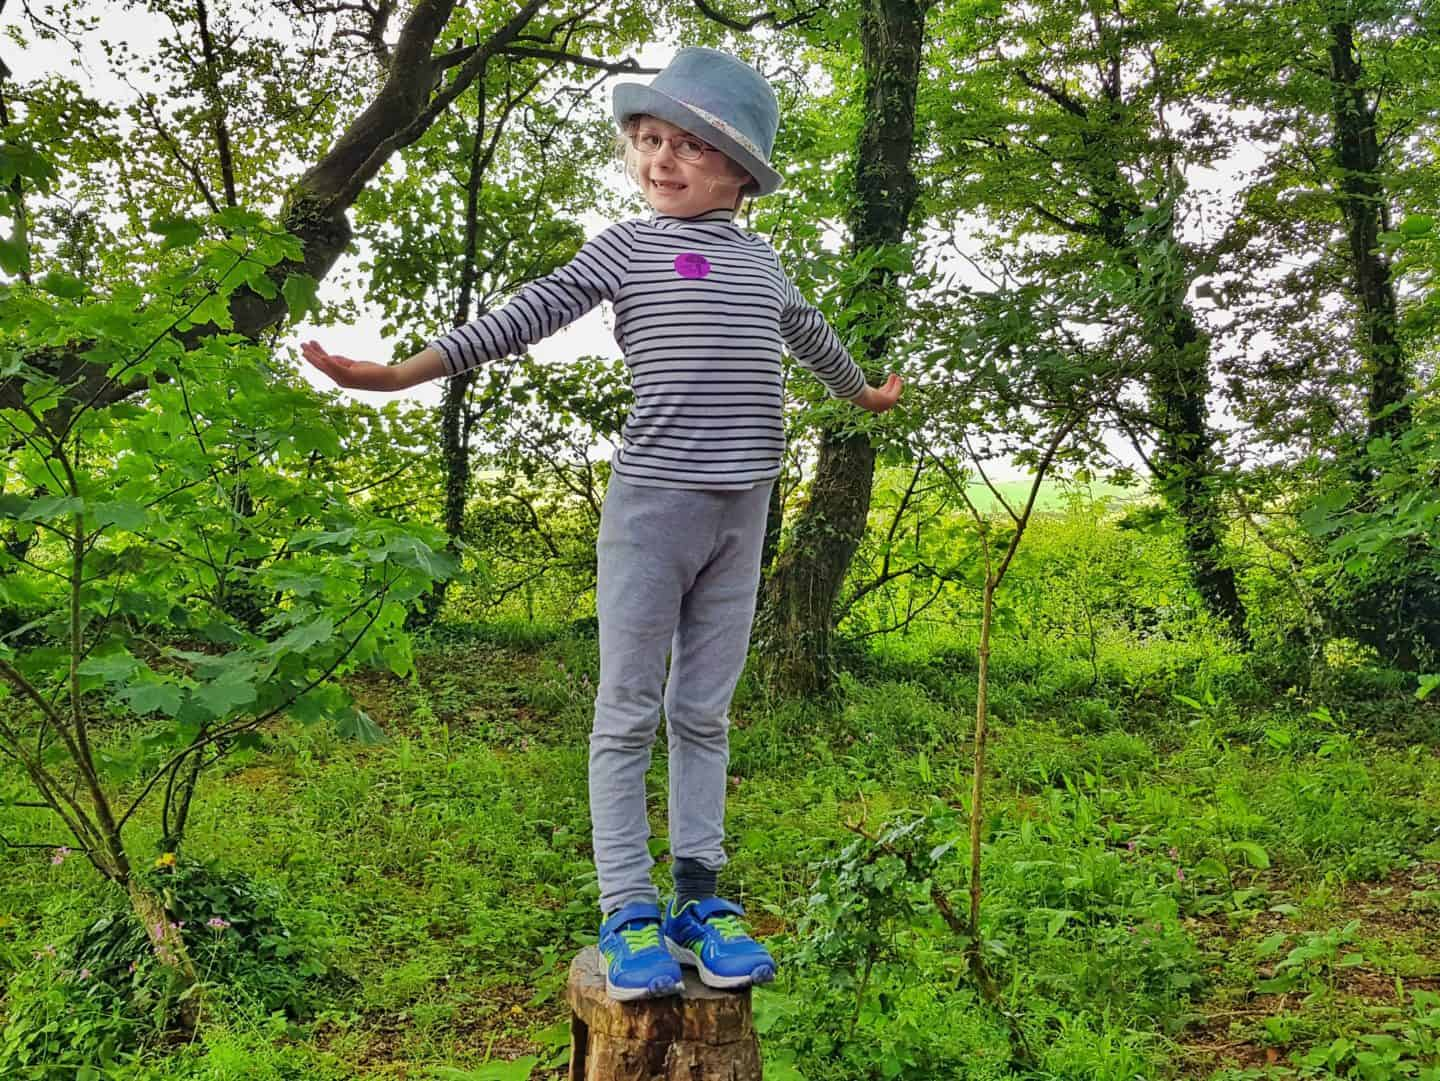 Girl in a blue hat standing on top of a log